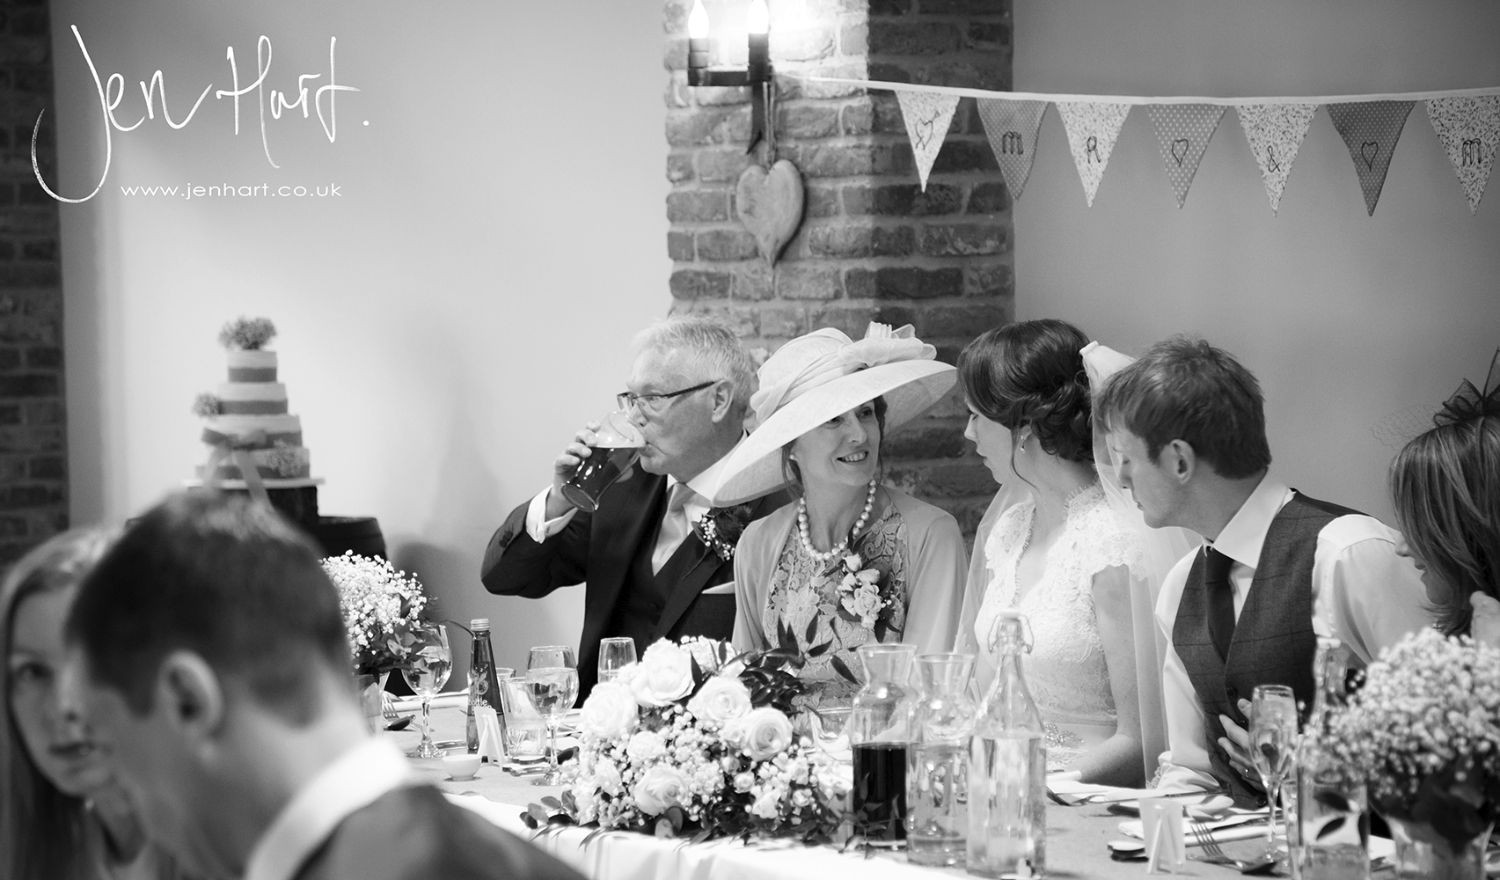 Photograph-Wedding-Whinstone-View_02May15_239